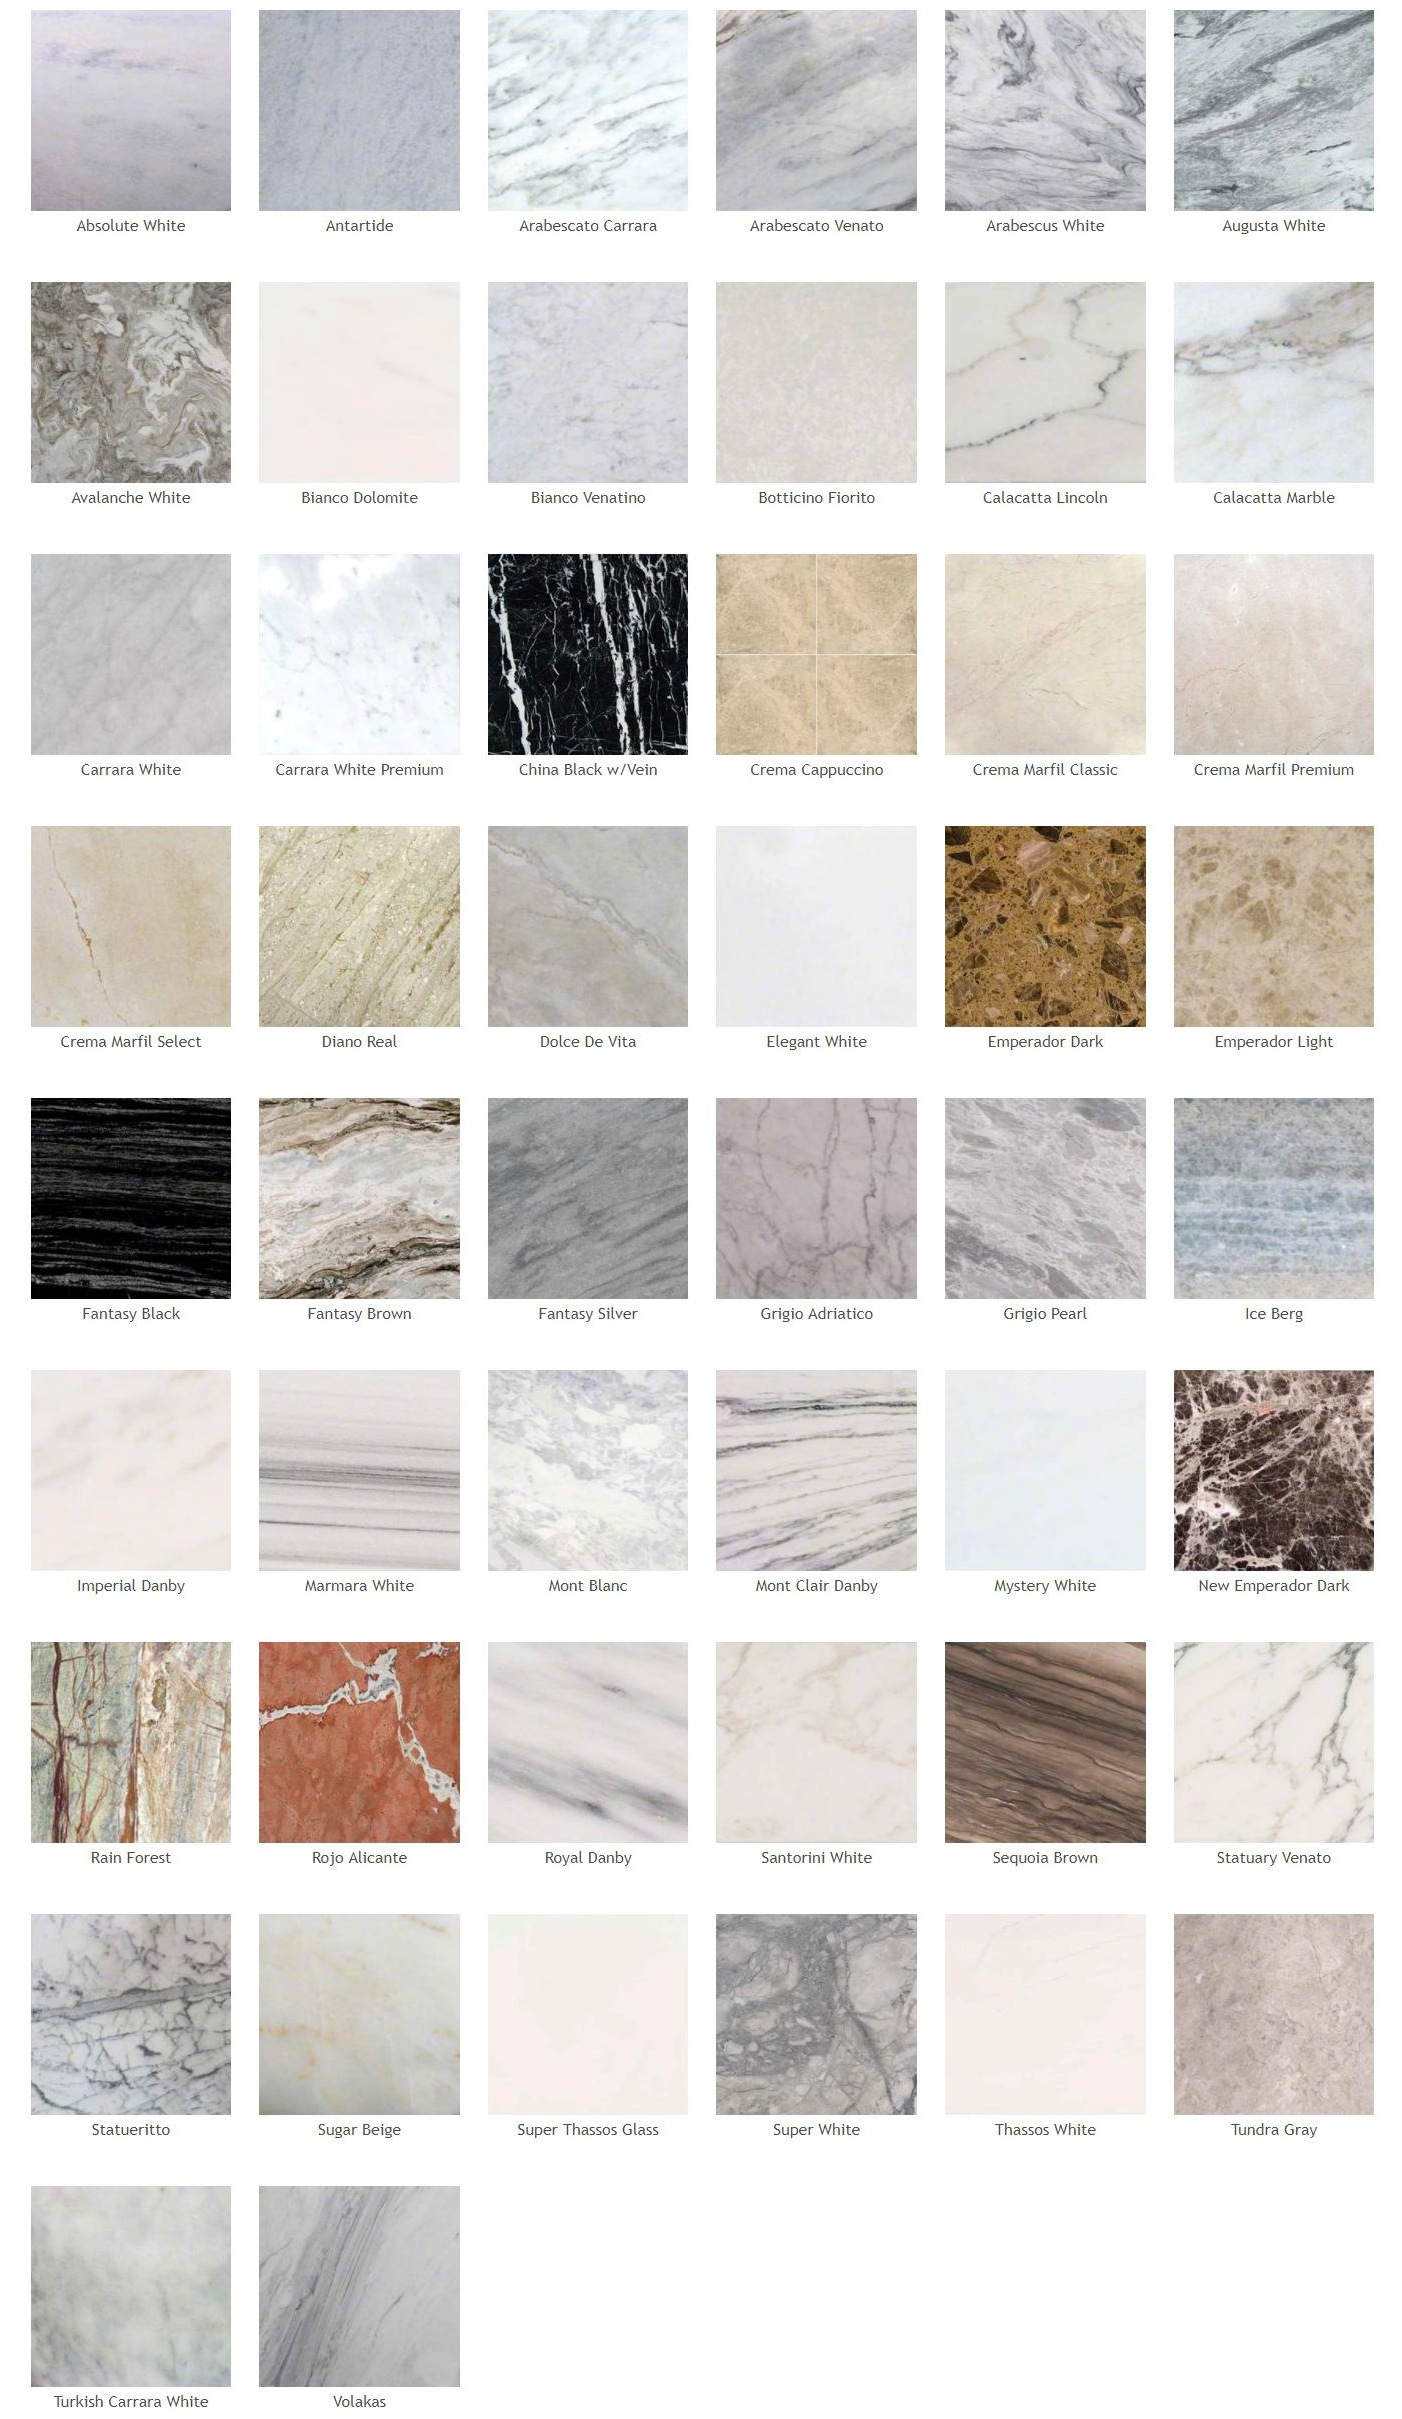 Marble Colors Real Group Construction Inc